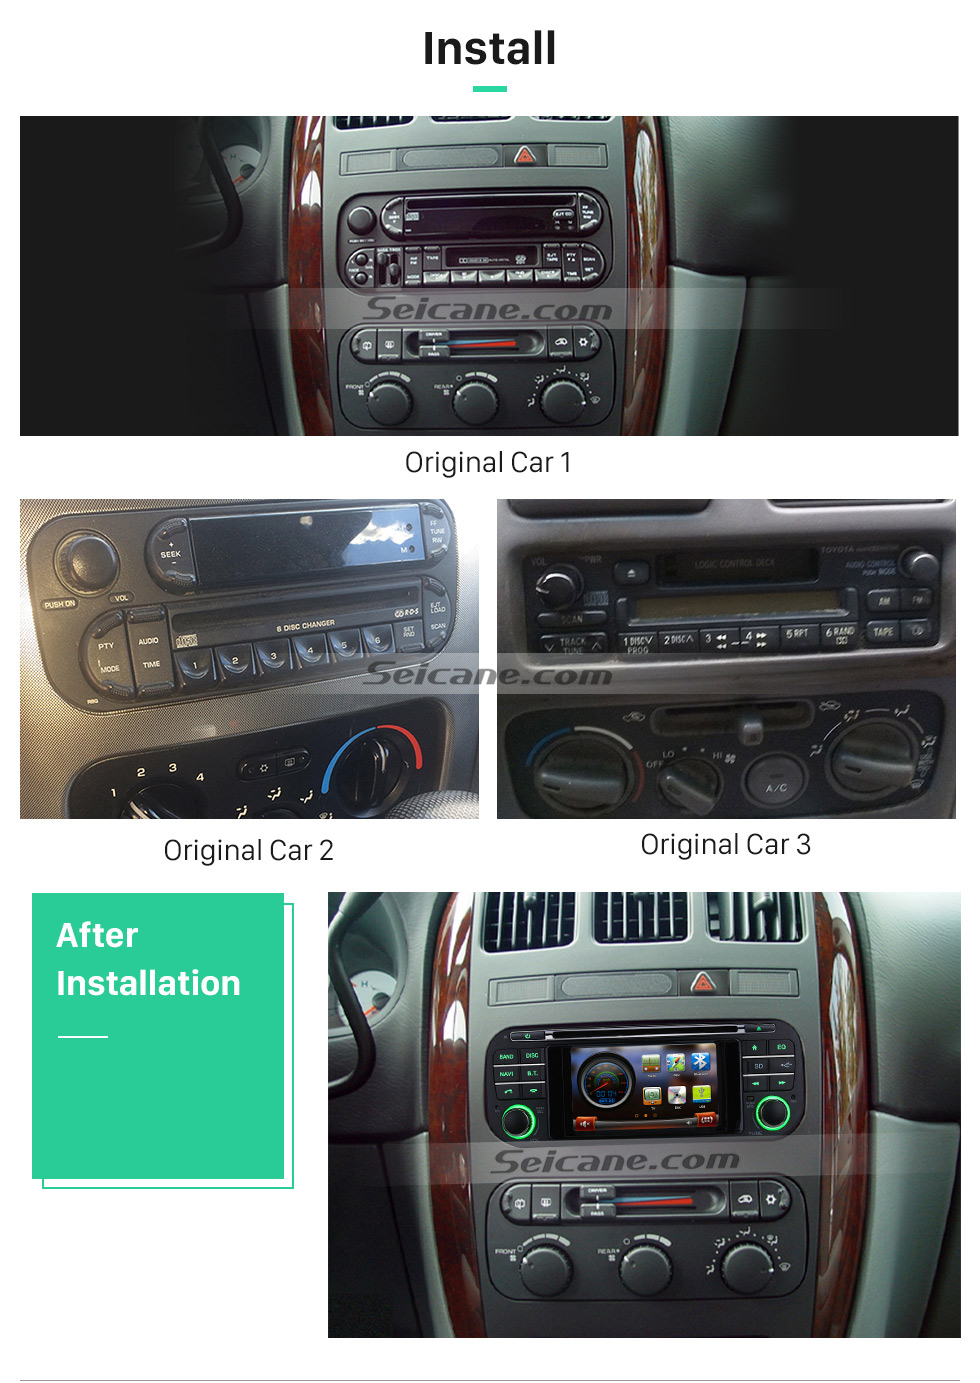 Seicane Wince 60 Touch Screen Car Dvd Headunit Stereo Player For Wiring Diagram 2002 Intrepid S106096w 01 02 03 04